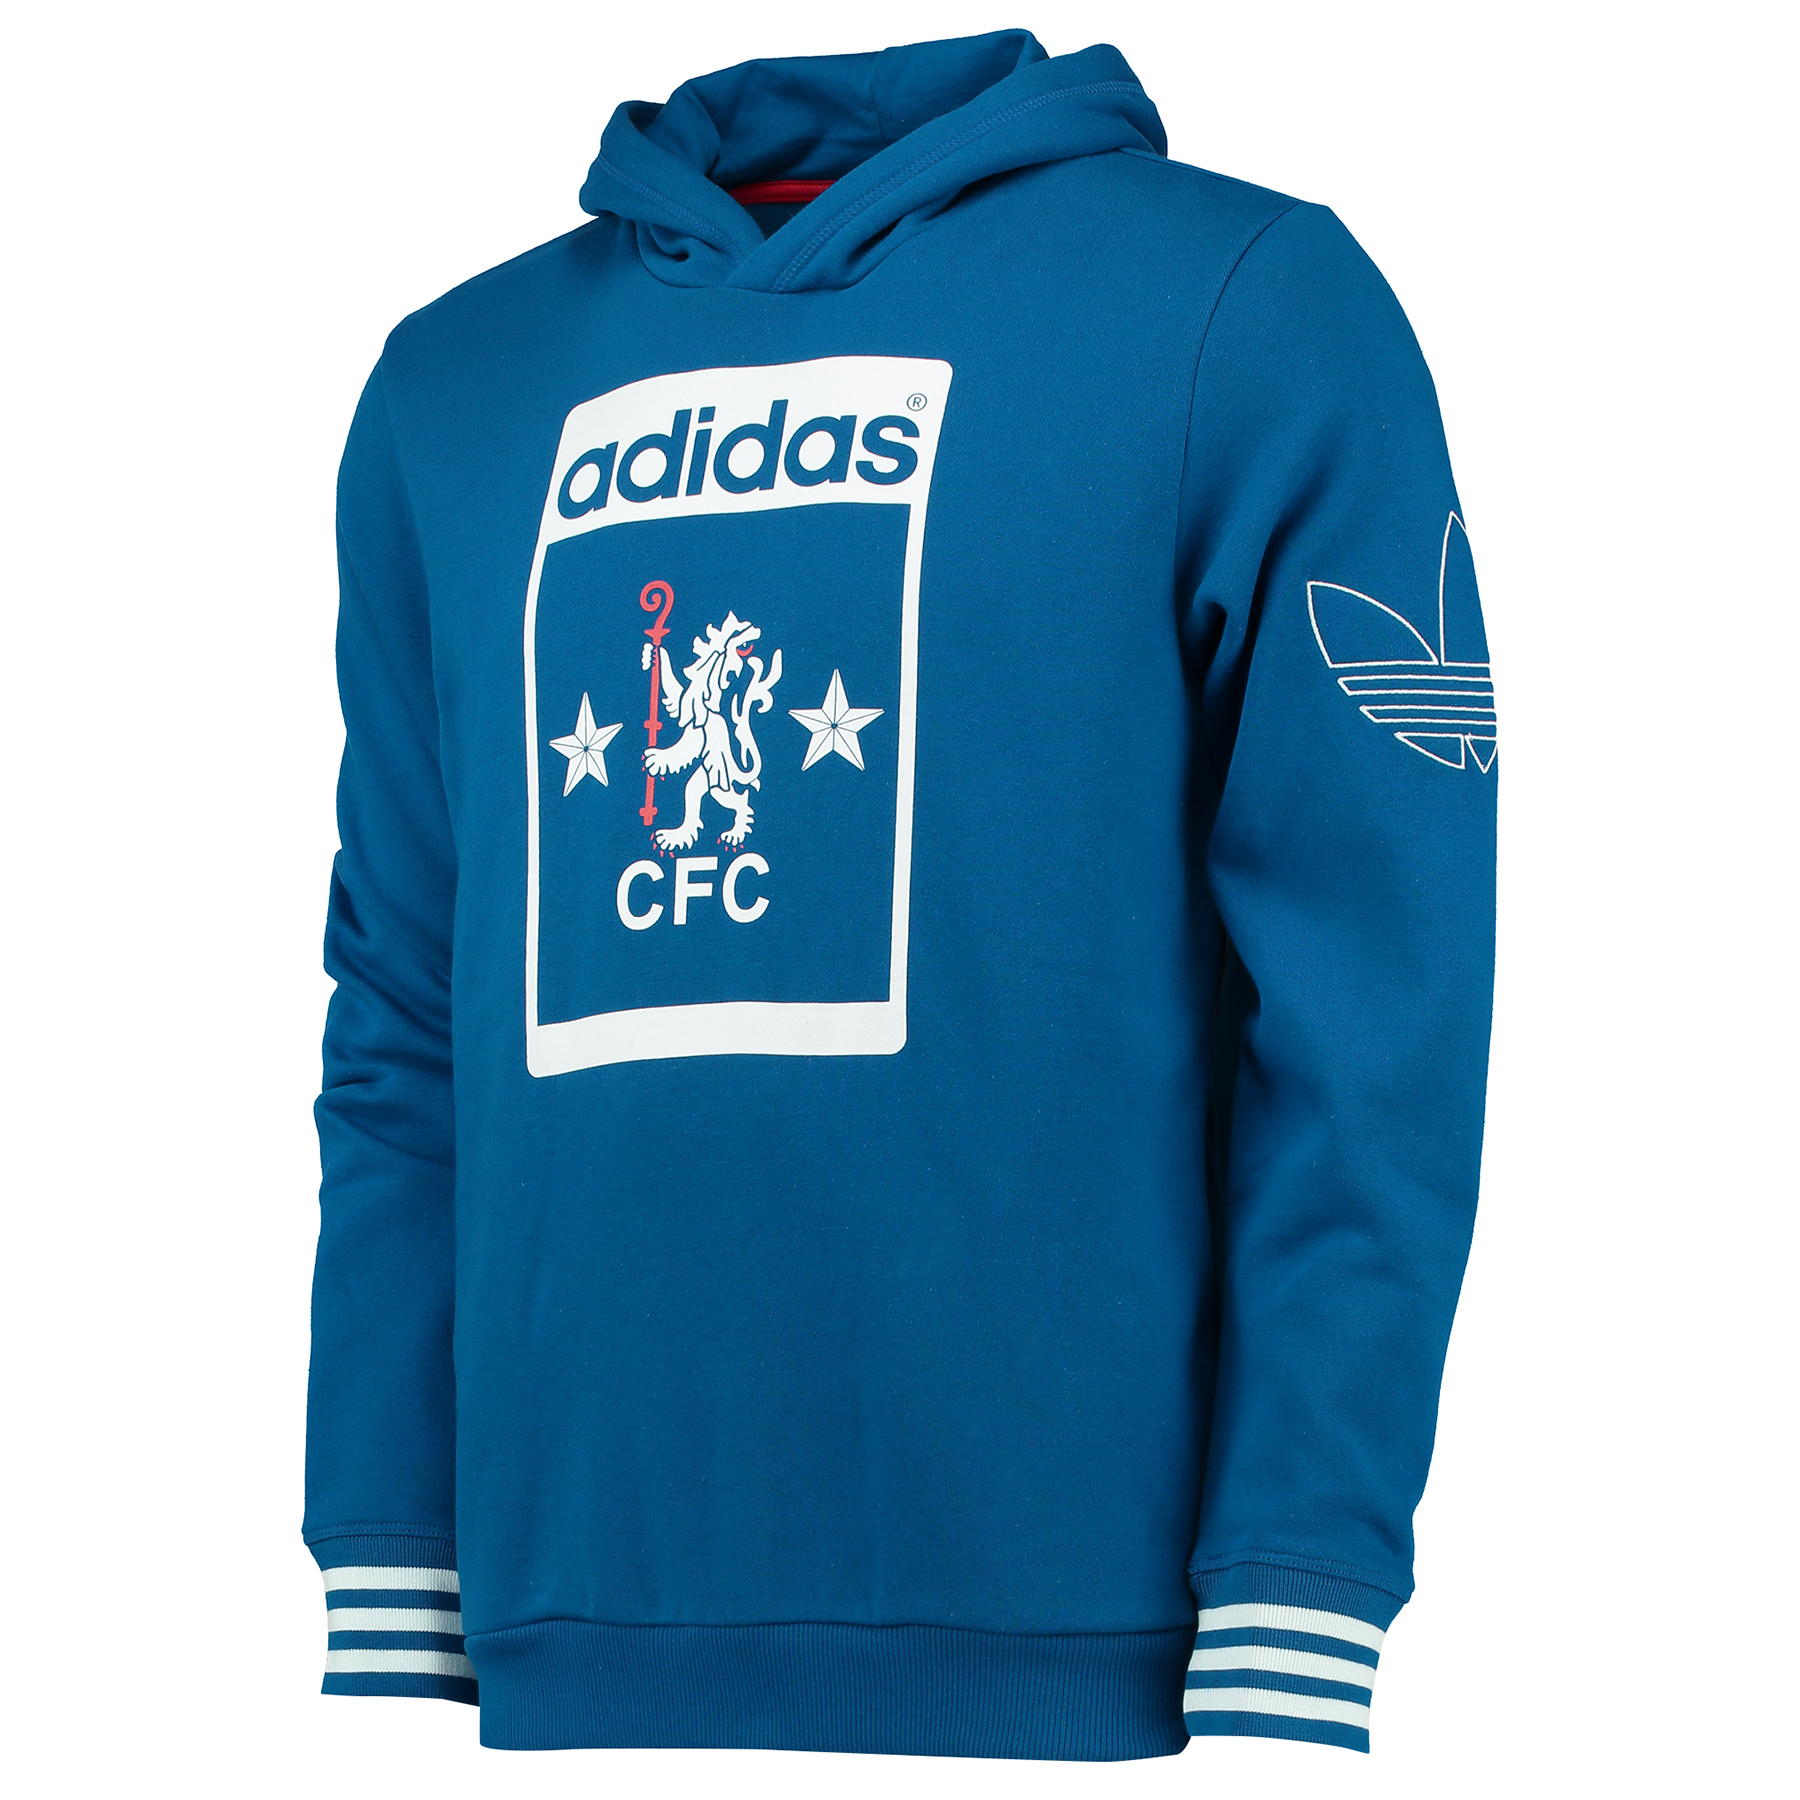 Chelsea adidas Originals Fleece - Navy   Embrace the retro revival with the Chelsea adidas Originals Fleece - Navy.   This vintage Chelsea FC fleece makes a flawless fit for the adidas Originals heritage brand – an ice-cool collection of throwback apparel with a 20th-century urban flavour.   A timeless twist on a clubwear classic, pay tribute to the Blues' legacy with this nostalgic design; influenced by the style of apparel worn at Stamford Bridge across past decades.   Benefits:   Men's retro fleece pullover hooded sweatshirt top Chelsea graphic in adidas shoe tongue label-inspired style Slim fit, with outline Trefoil print on left shoulder Ribbed cuffs and hem, hood with overlap front 70% cotton / 30% brushed polyester fleece